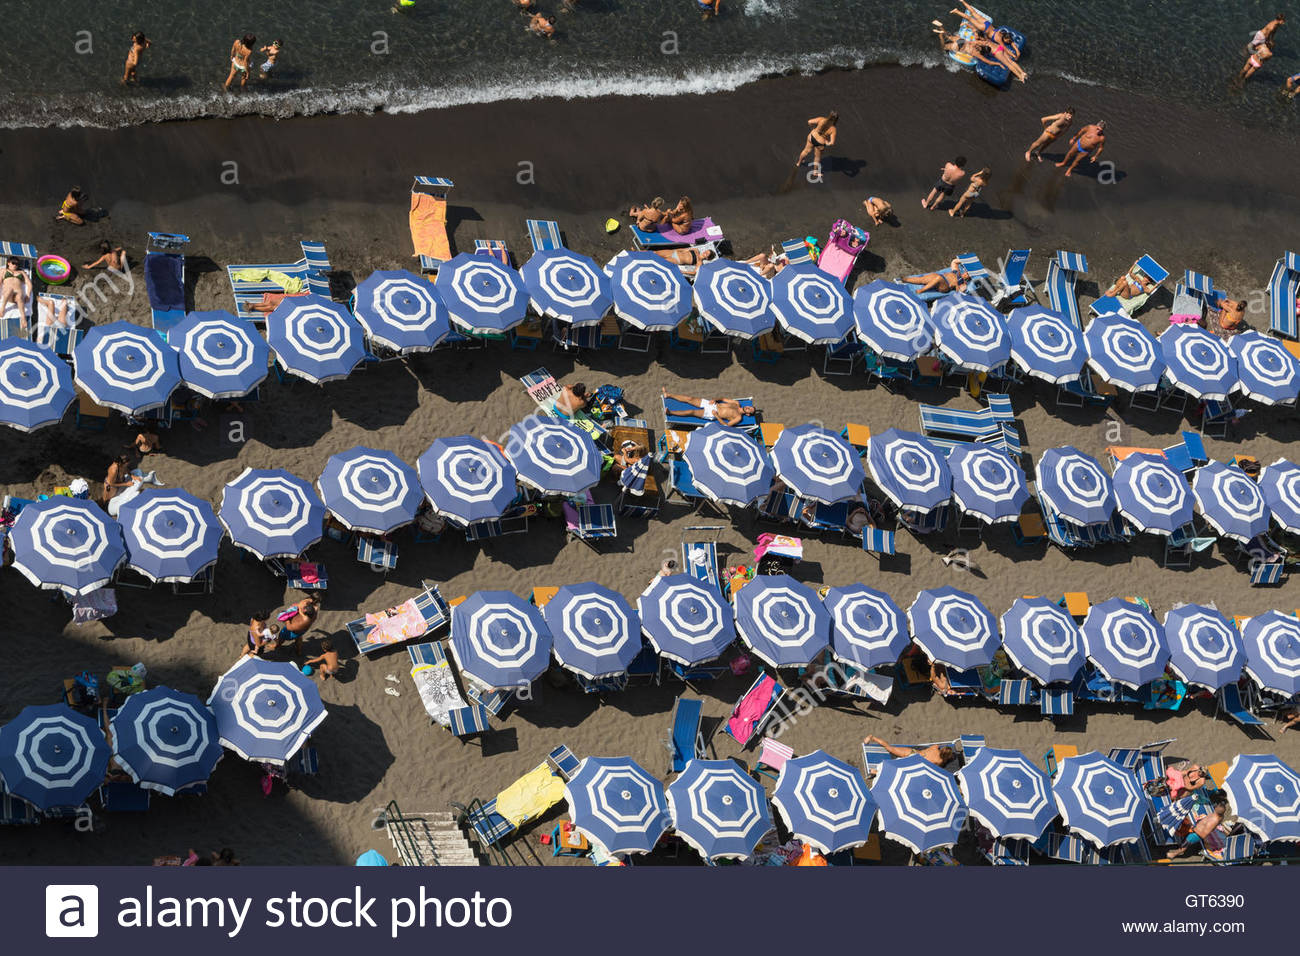 Overhead view of blue and white striped sunshades on a beach in Sorrento, Italy. - Stock Image